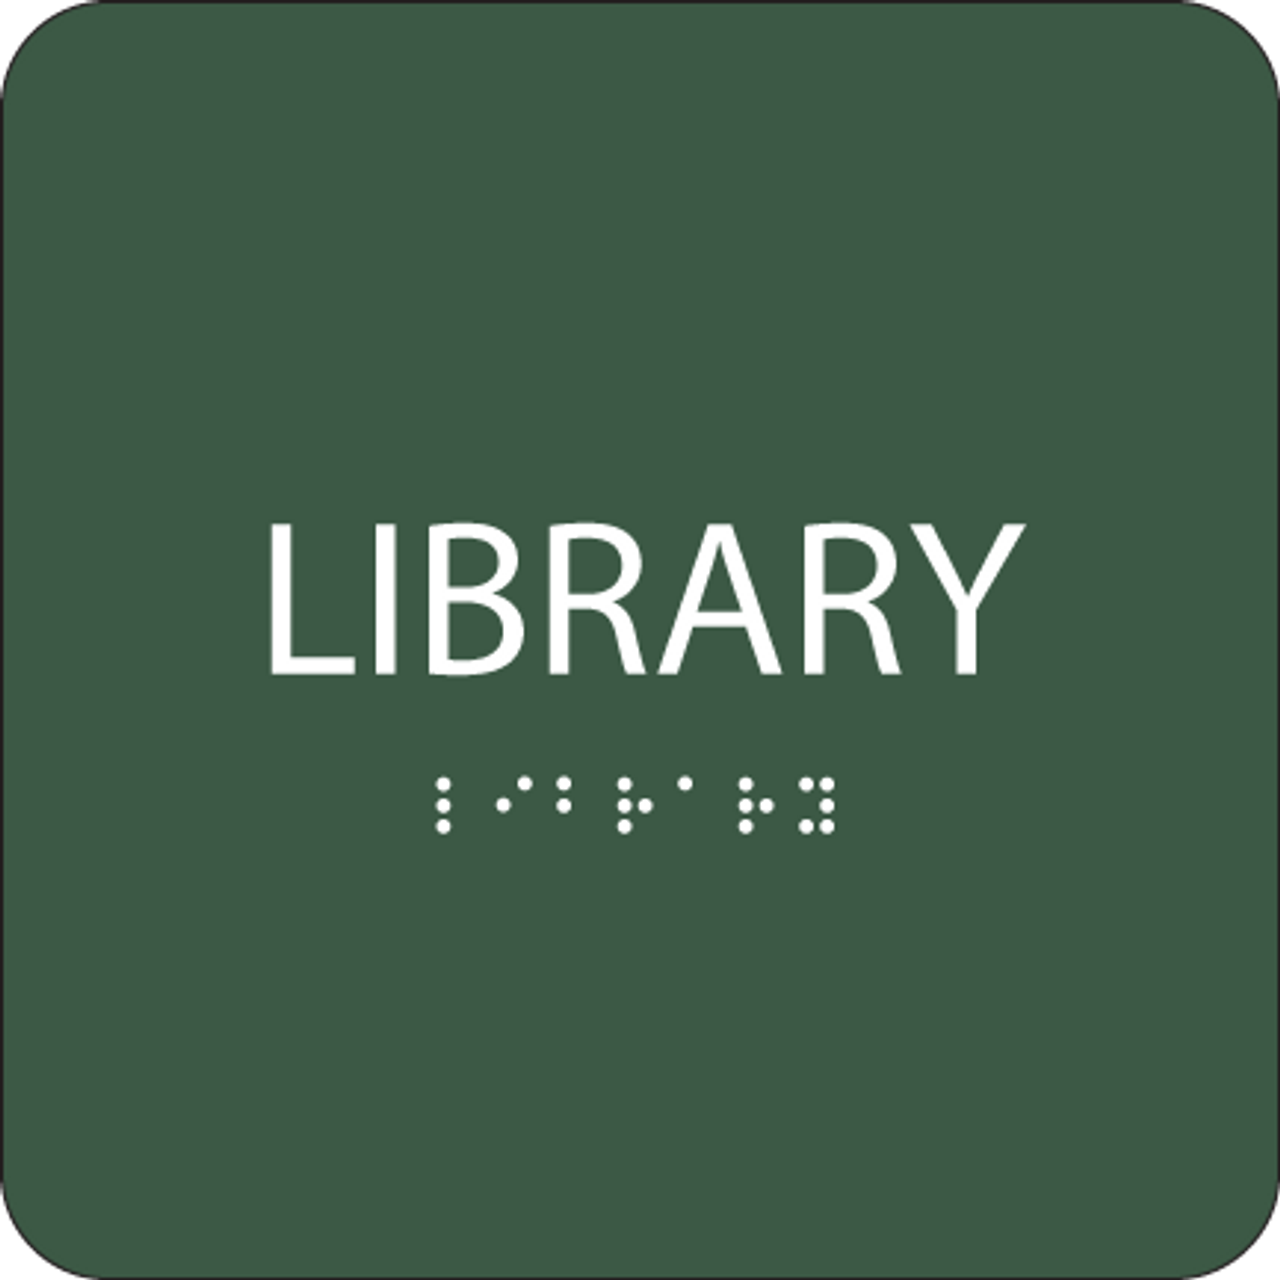 Green Library Tactile Sign